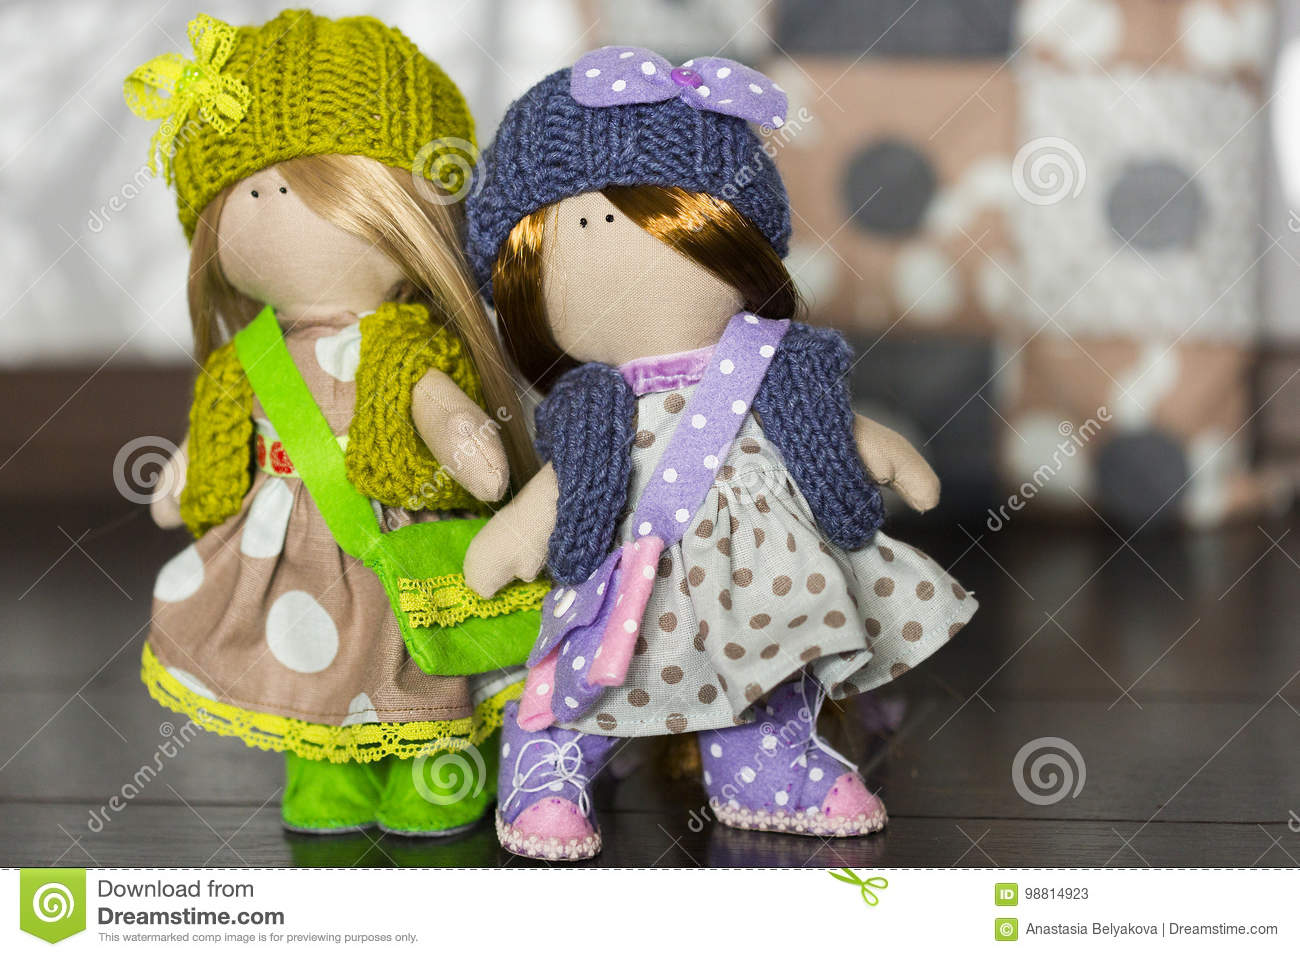 Little Rag Dolls Dressed In Polka Dot Dresses, Knitted Hats With ...